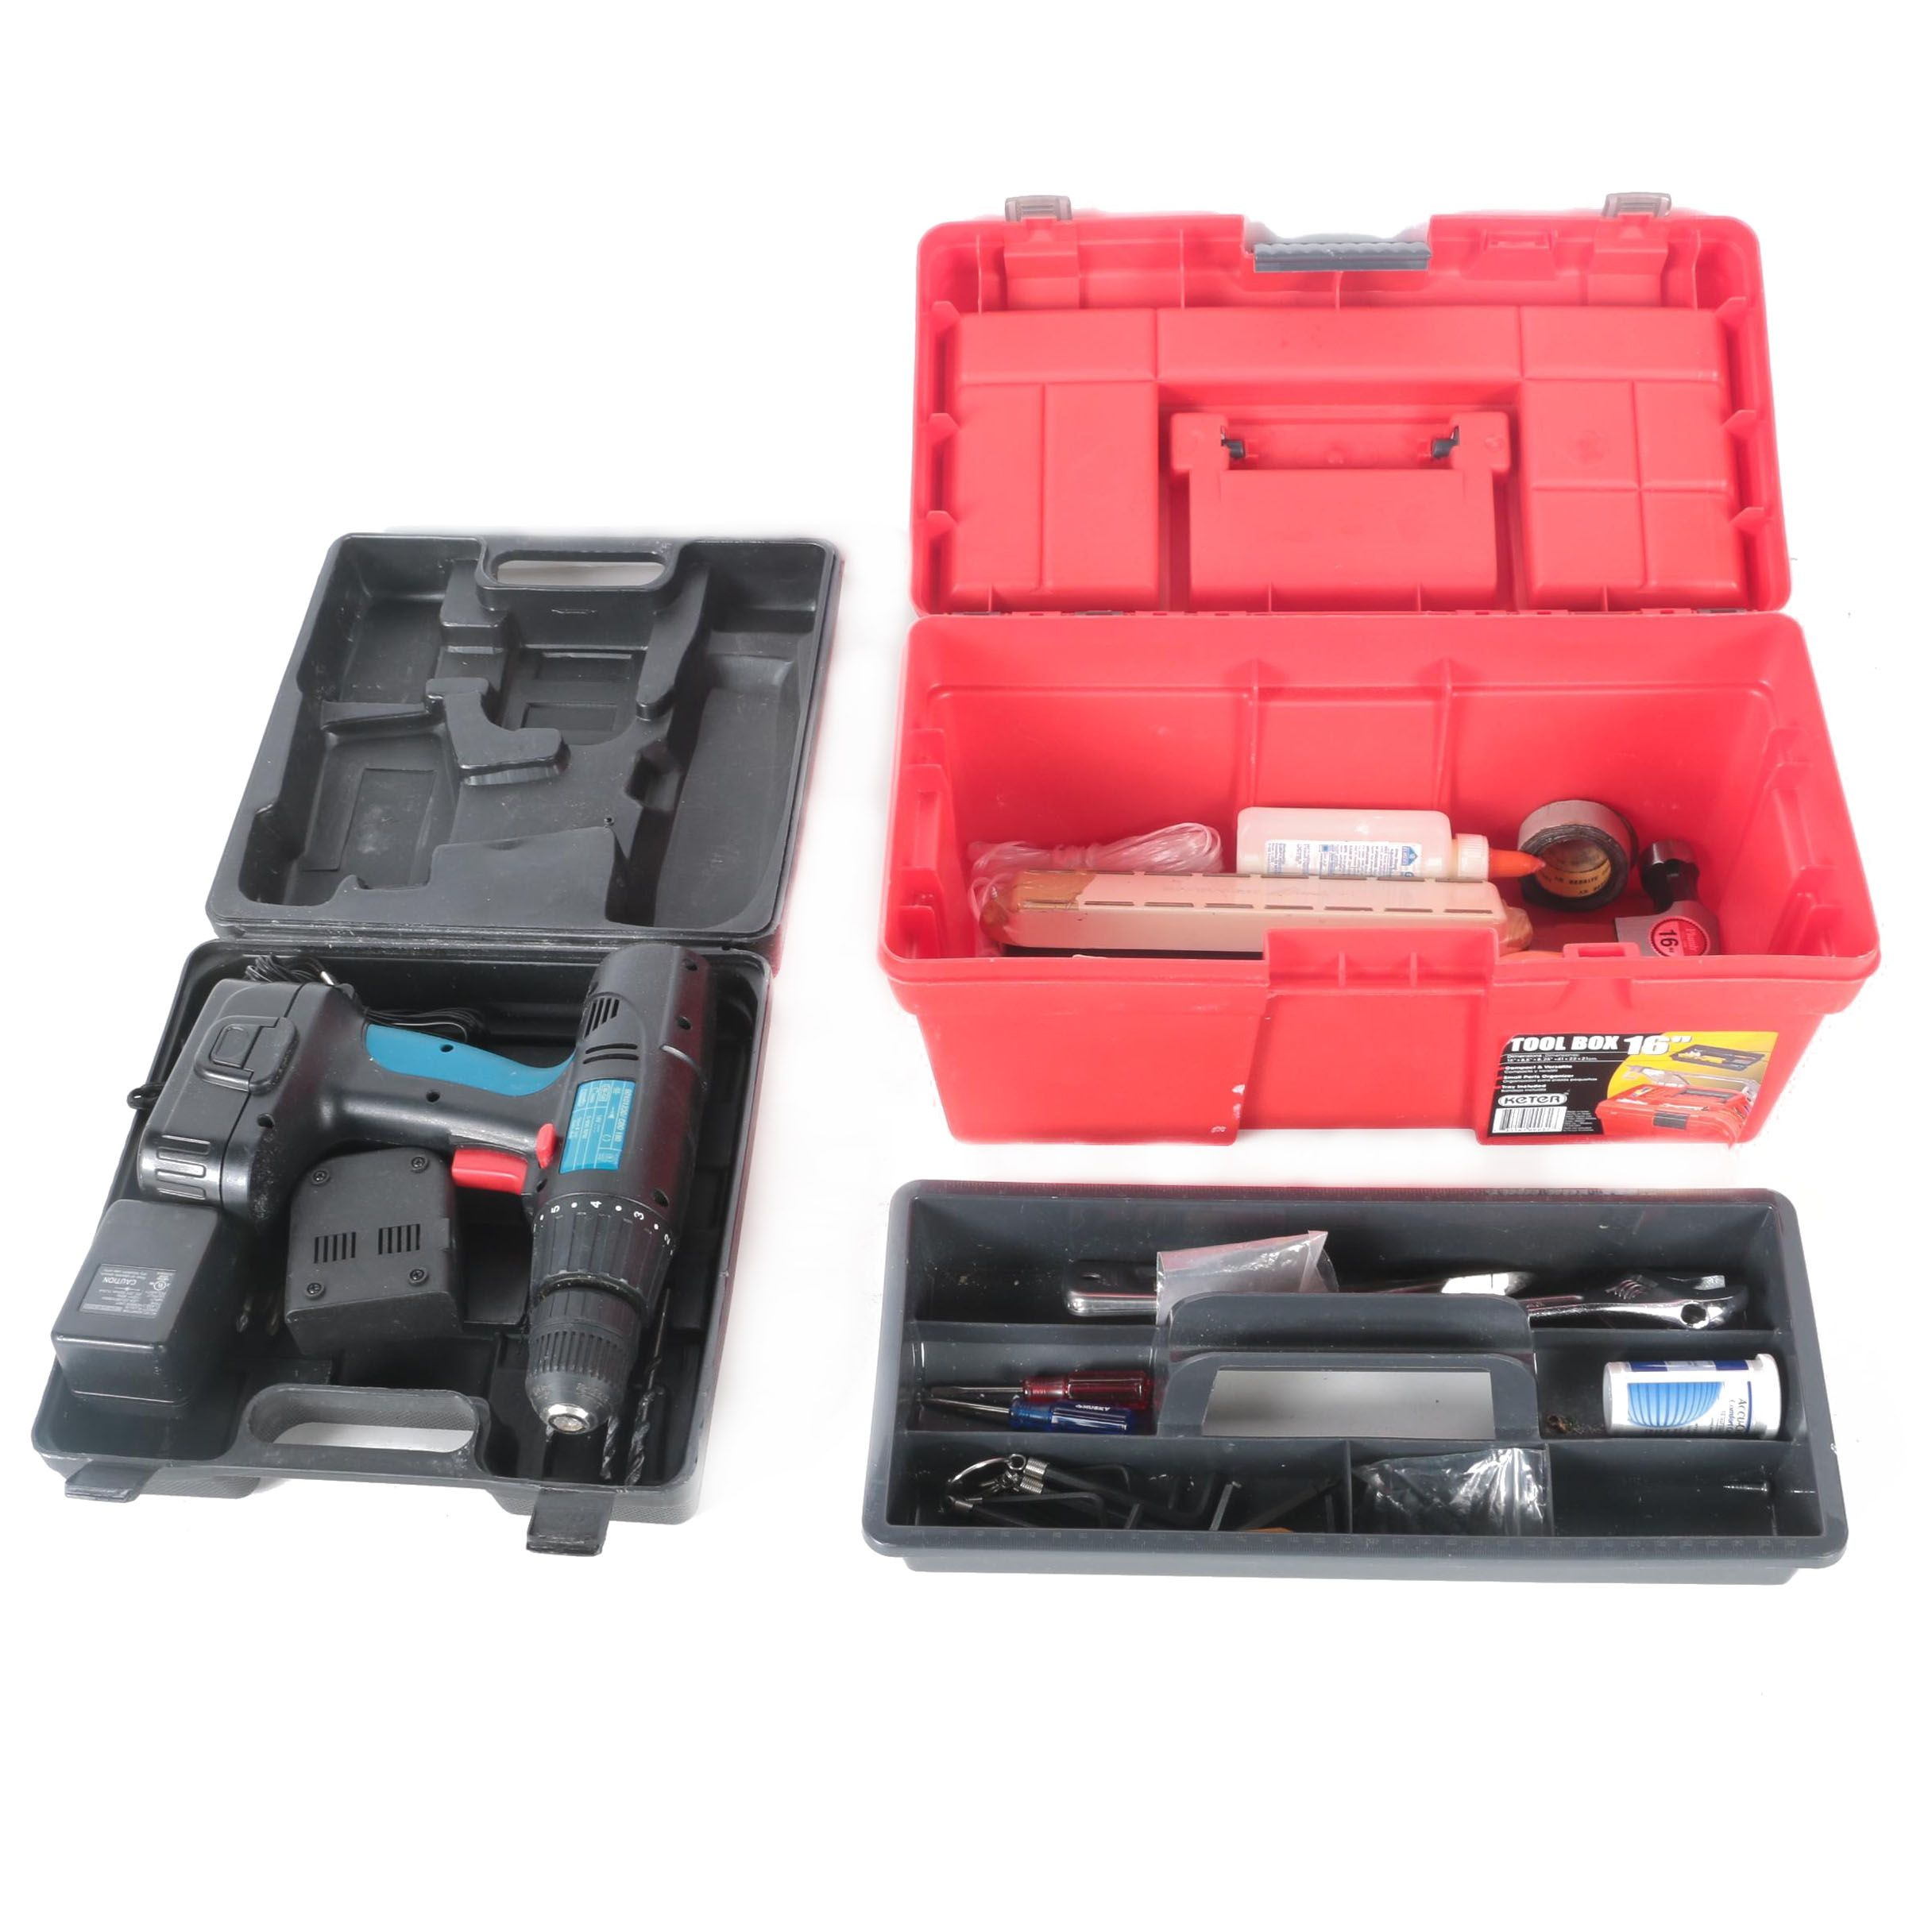 Toolbox and Power Glide Drill